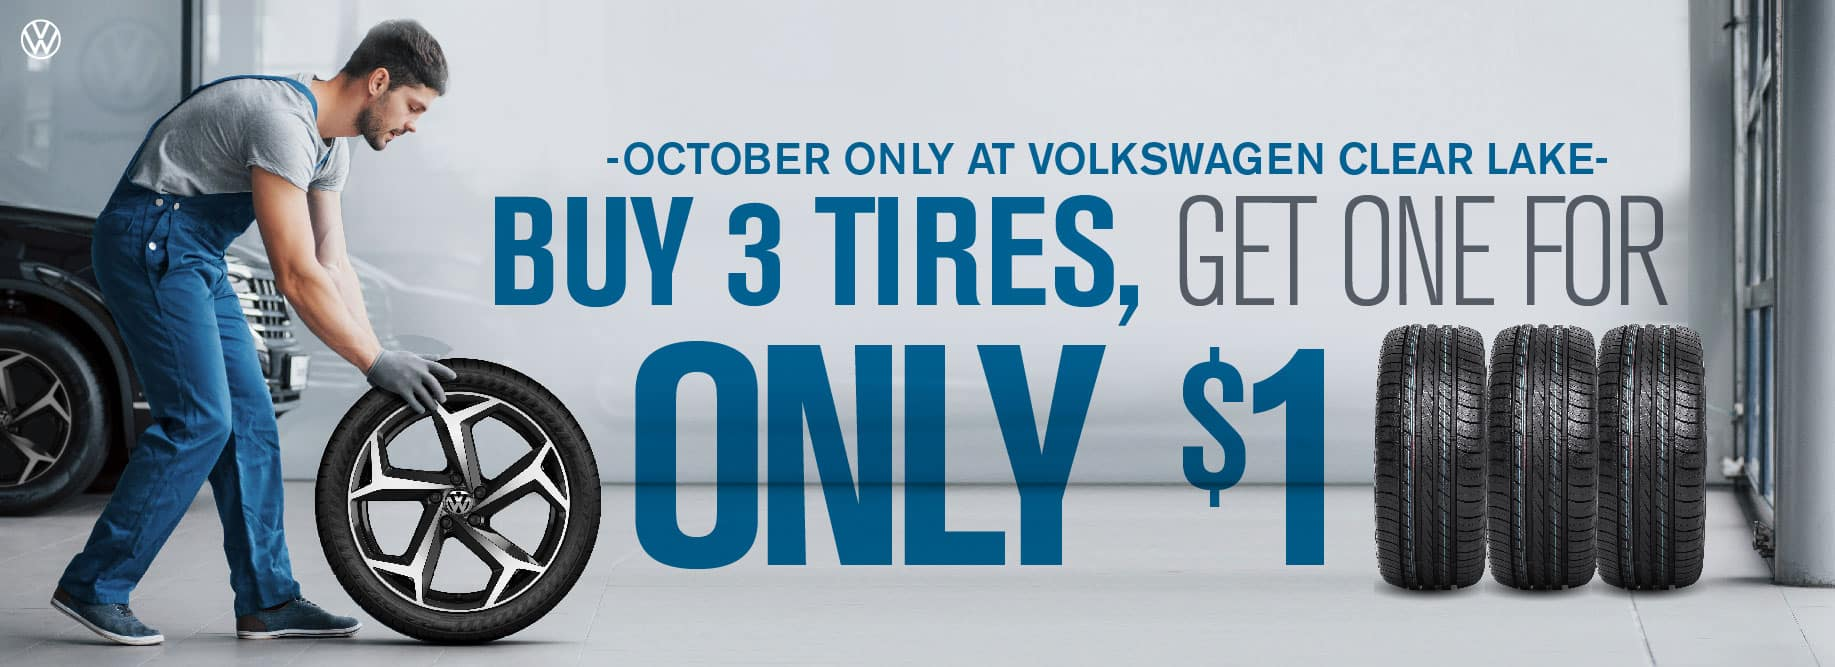 Buy 3 Tires get one for $1 at VW Clear Lake